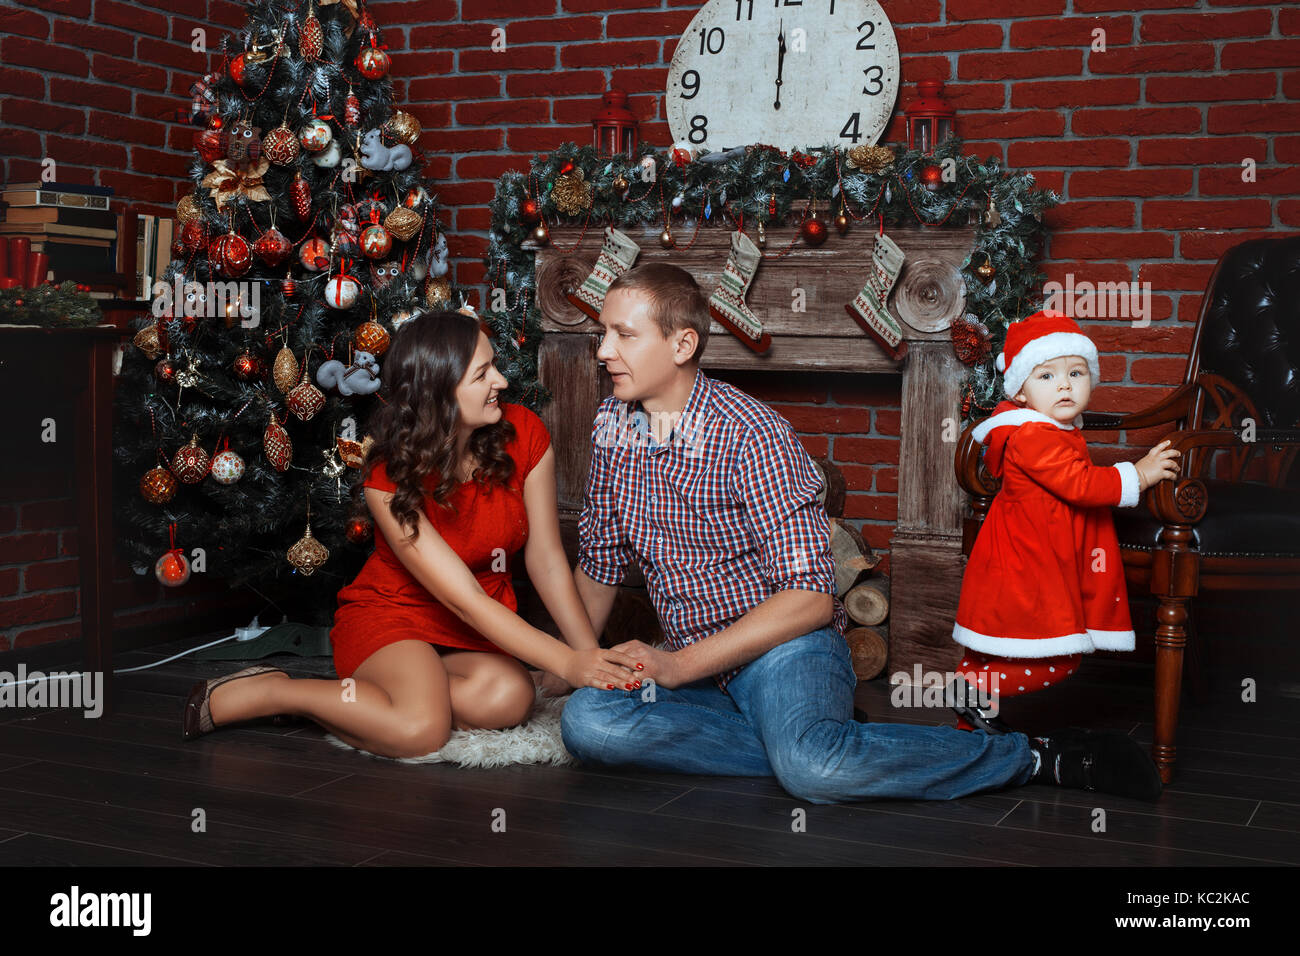 christmas tree presents fireplace stock photos u0026 christmas tree